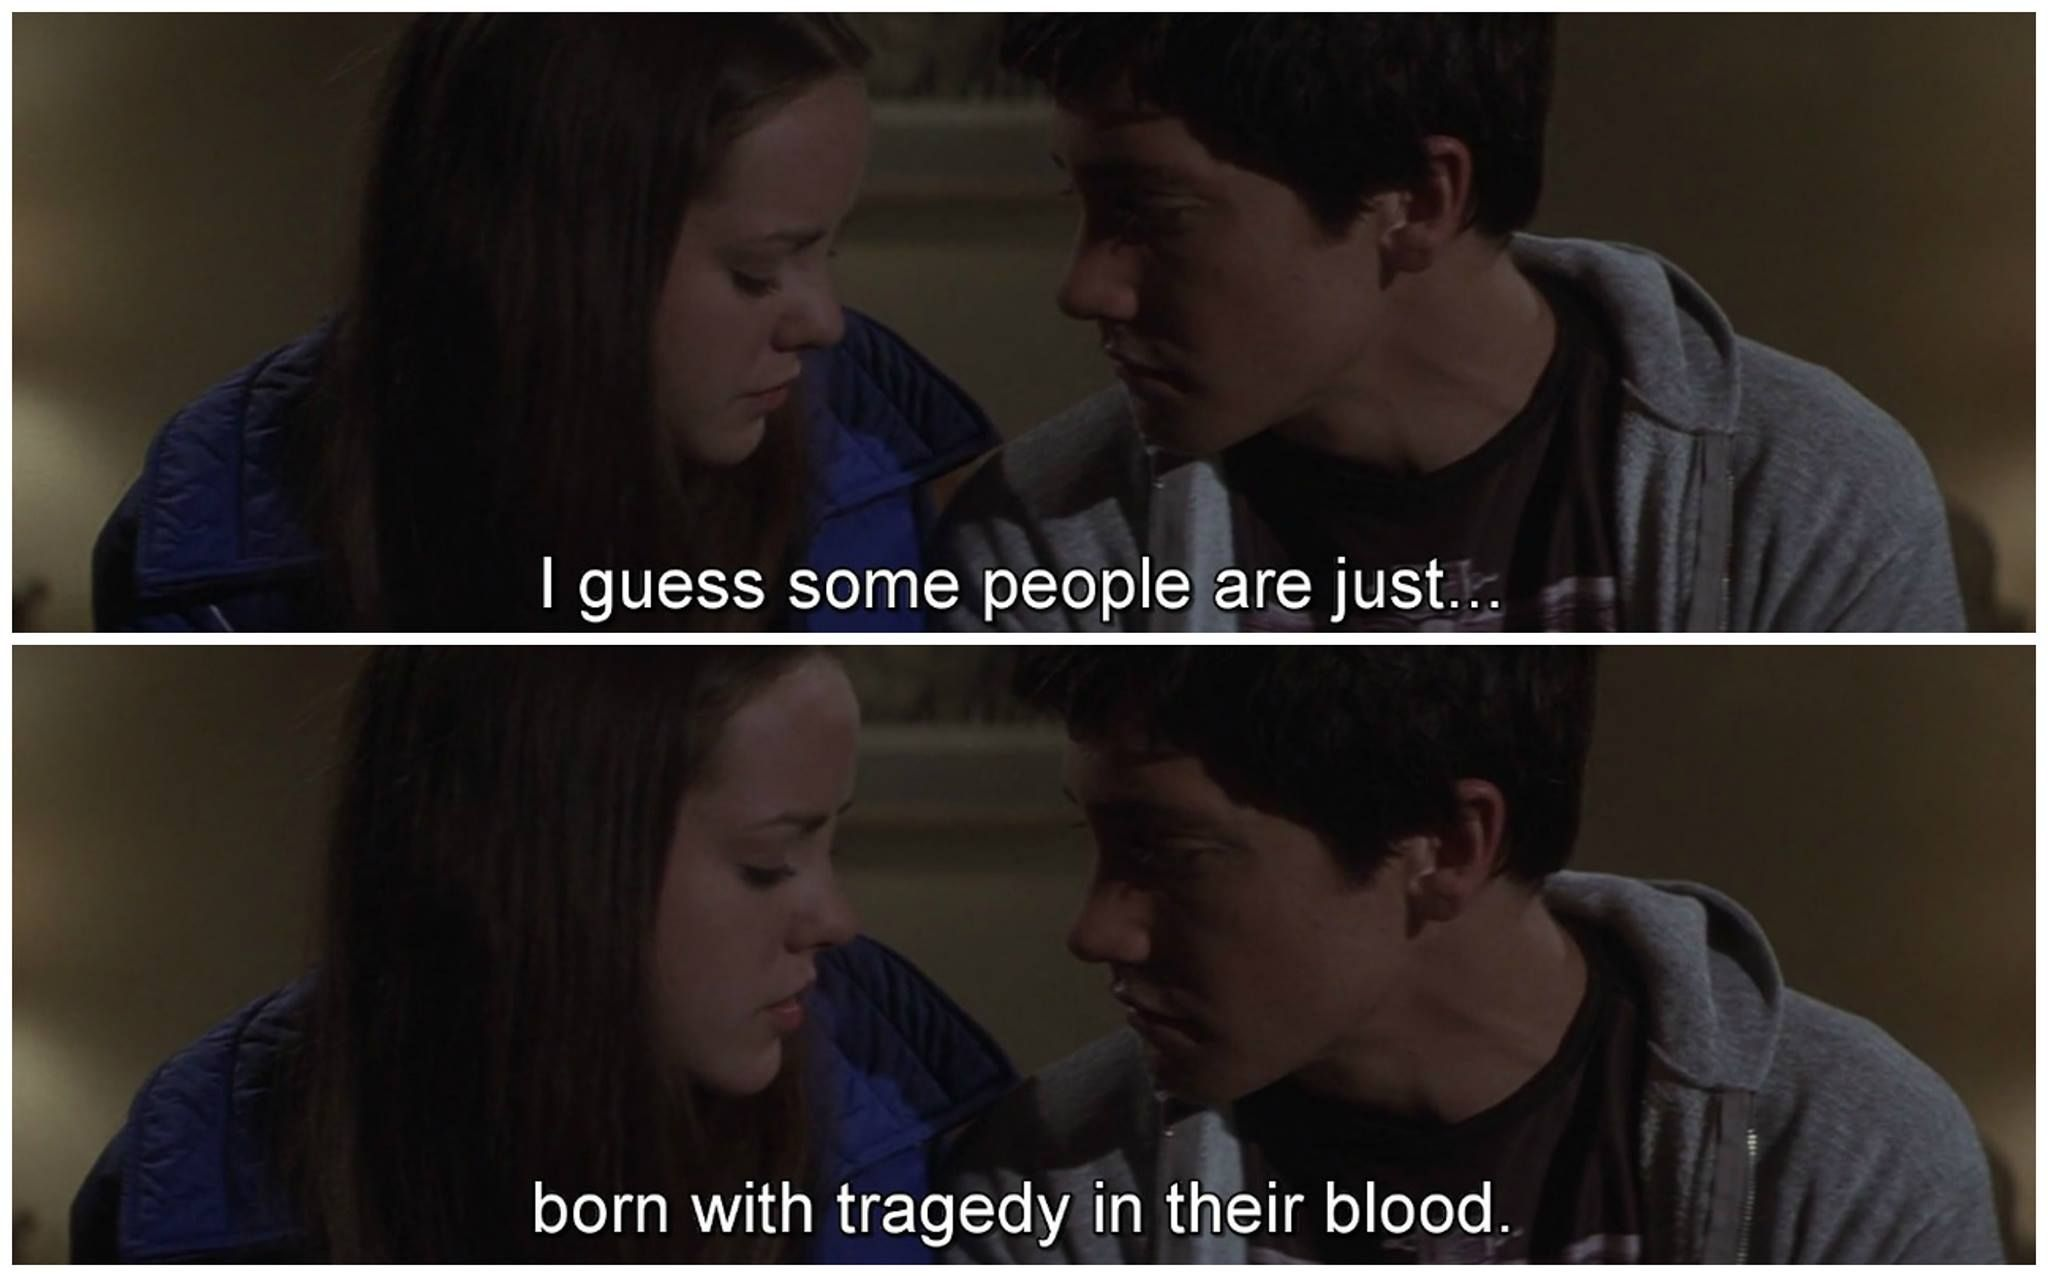 Donnie Darko. I guess some people are just born with tragedy ...